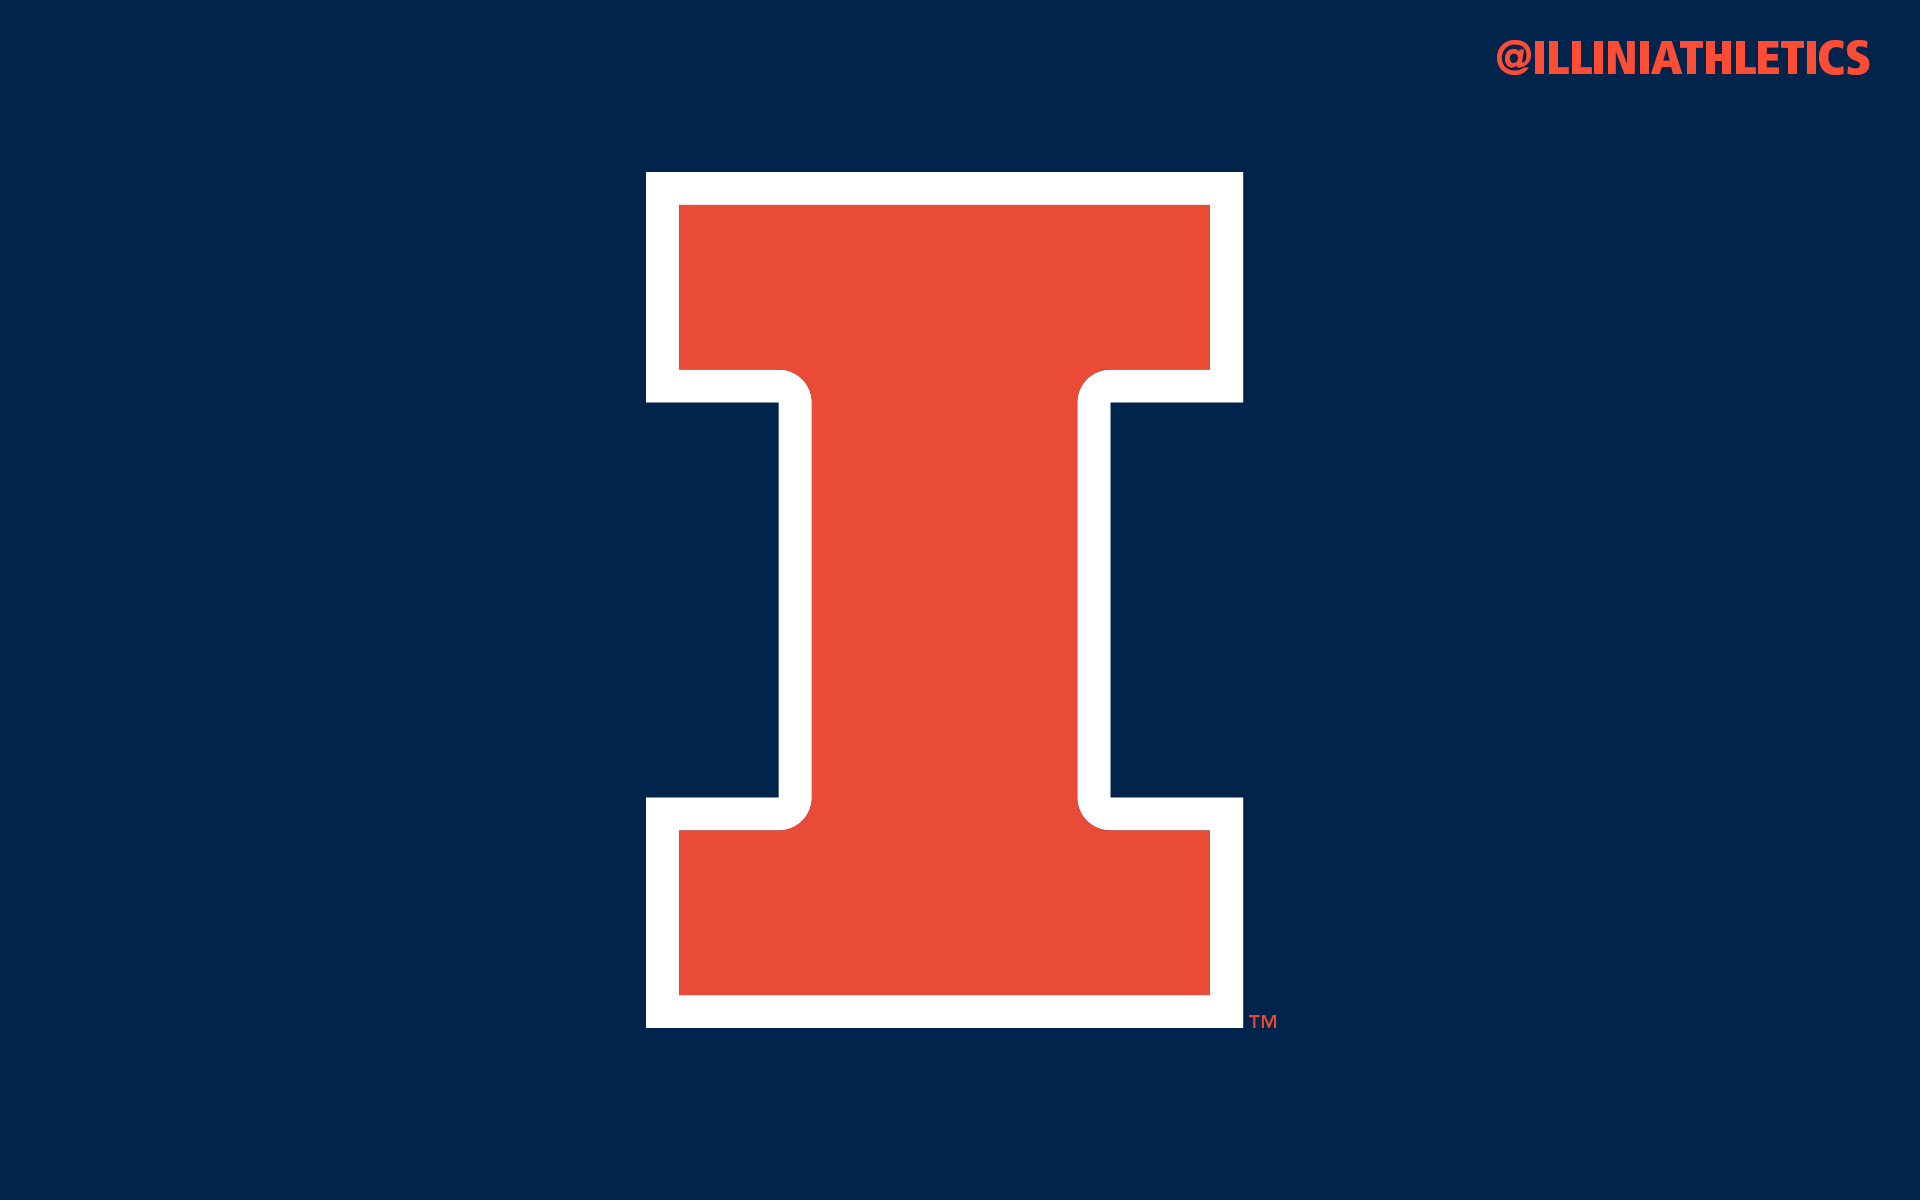 University Of Illinois Wallpaper 2017   2018 Best Cars 1920x1200